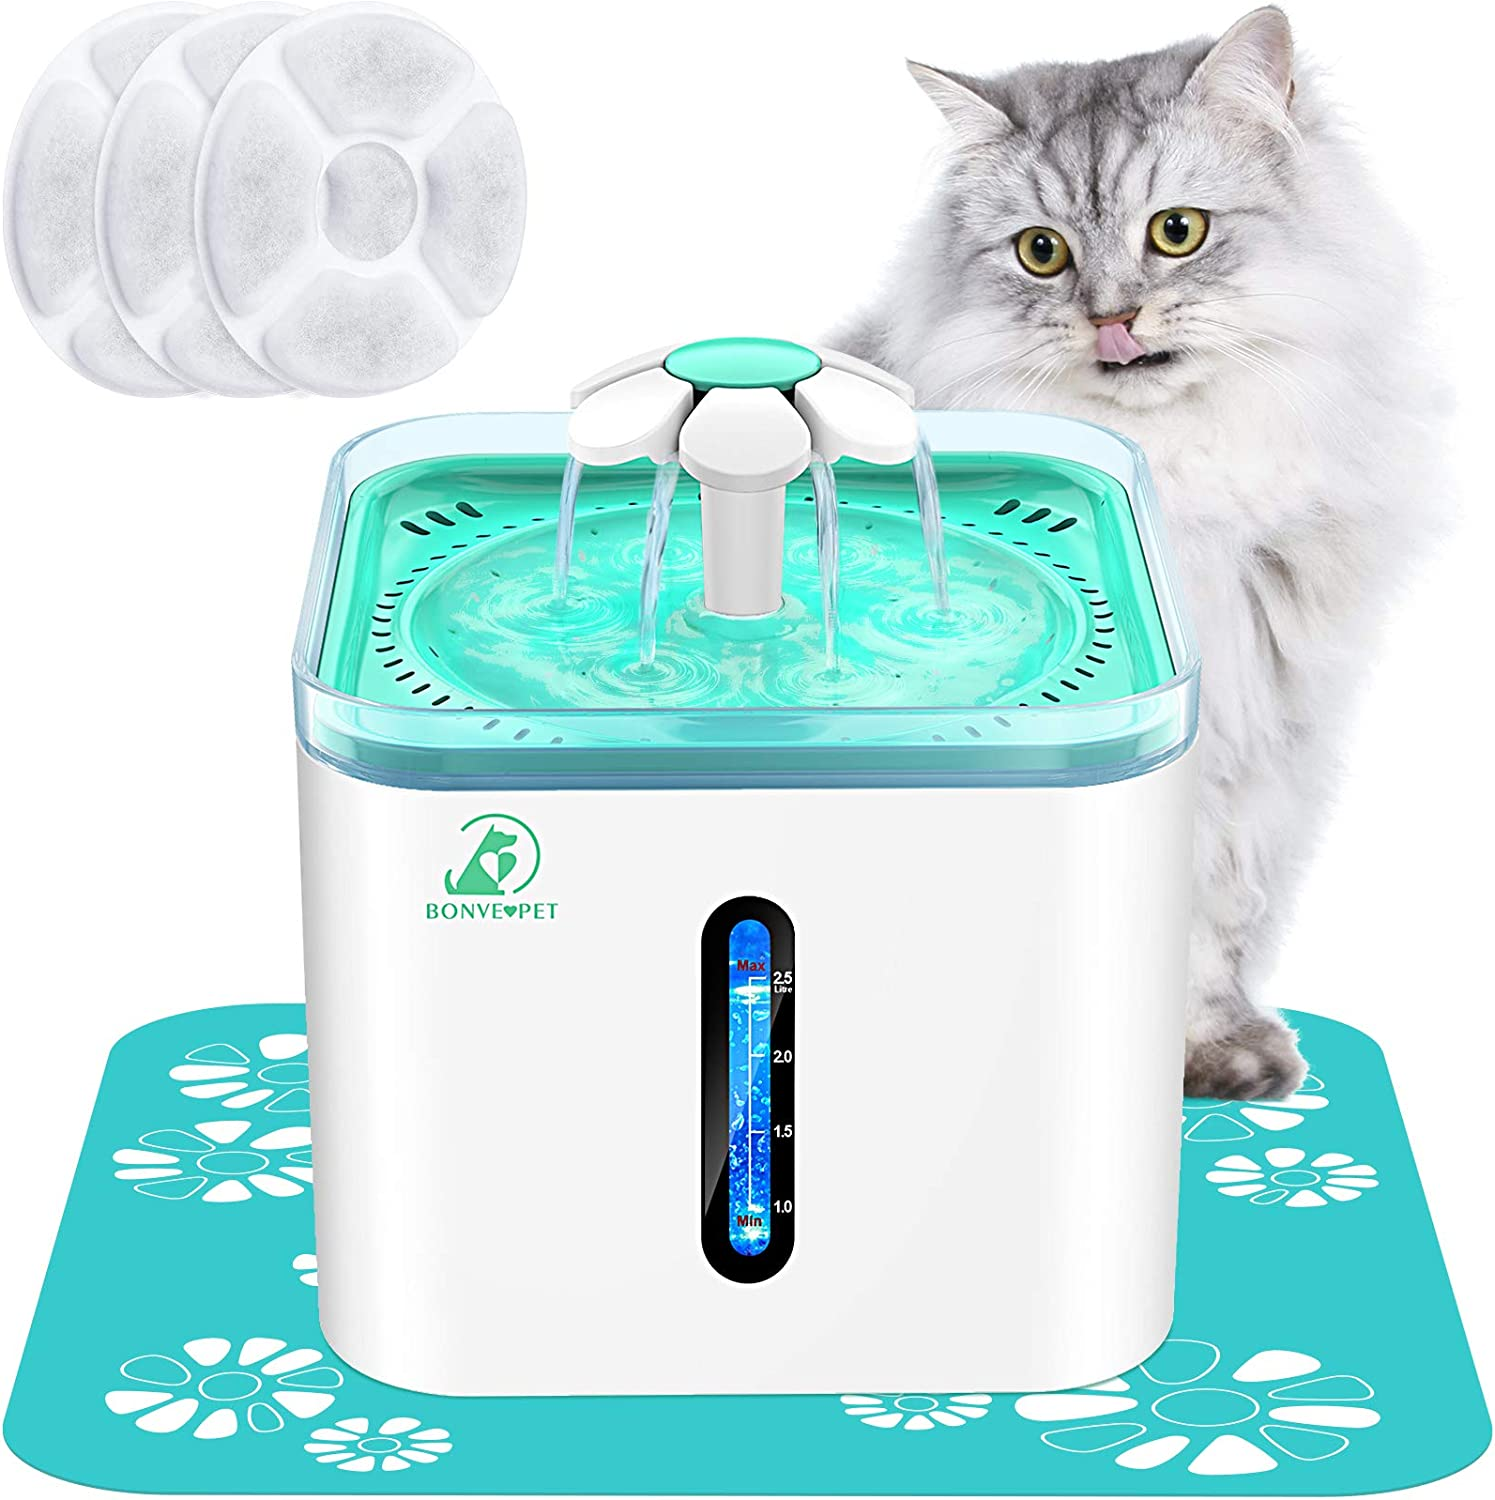 Bonve Pet 2.5L/84oz Cat Water Fountain Automatic Pet Water Fountain Intelligent Pump Led Water Indicator 3 Replacement Filter&1 Silicone No-Slip Mat for Inside Cats Dogs Multiple Pet Water Dispenser